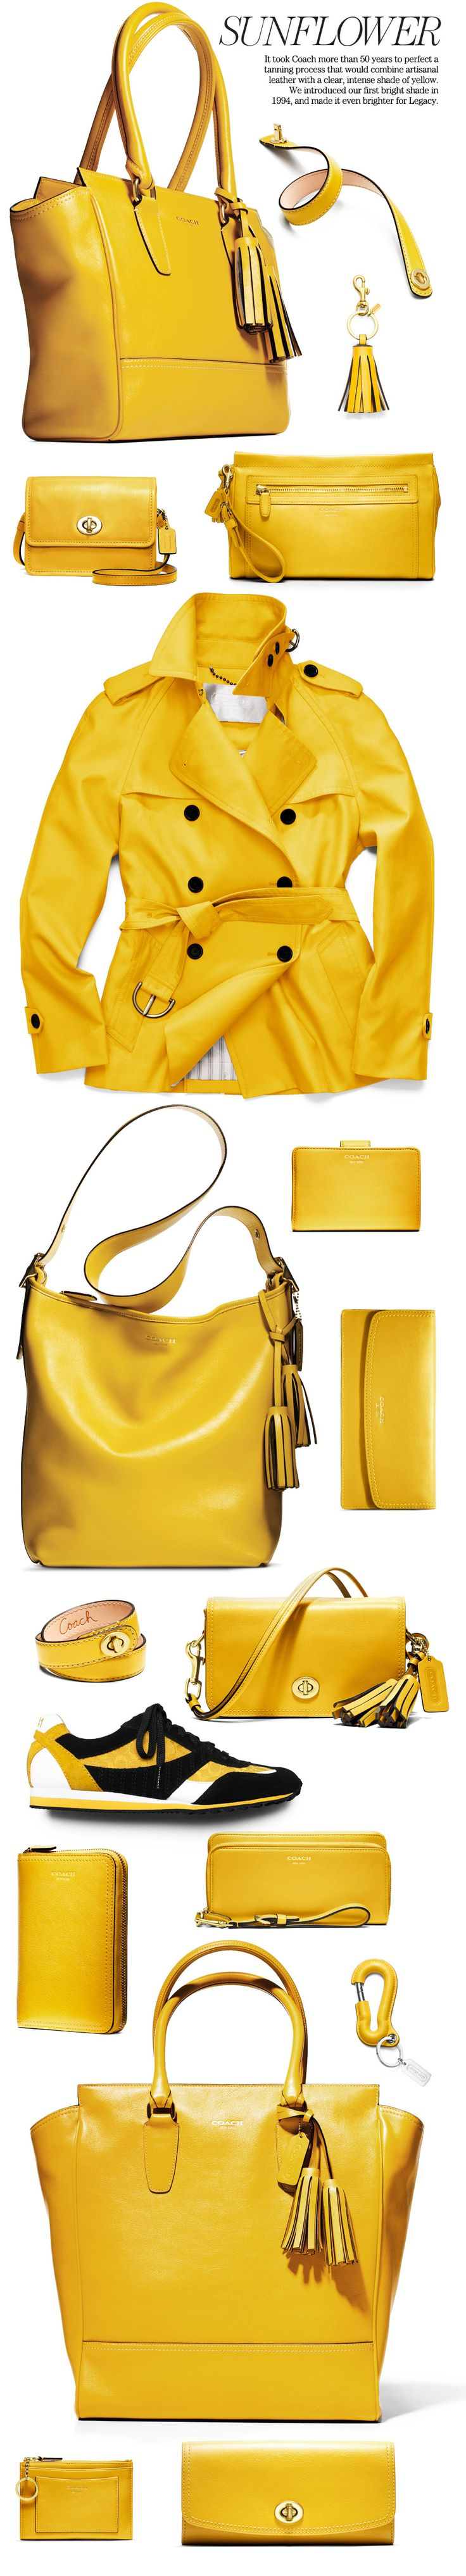 Shop the Coach Legacy Collection in Sunflower Yellow<----I almost fainted #yellowismyfavcolor